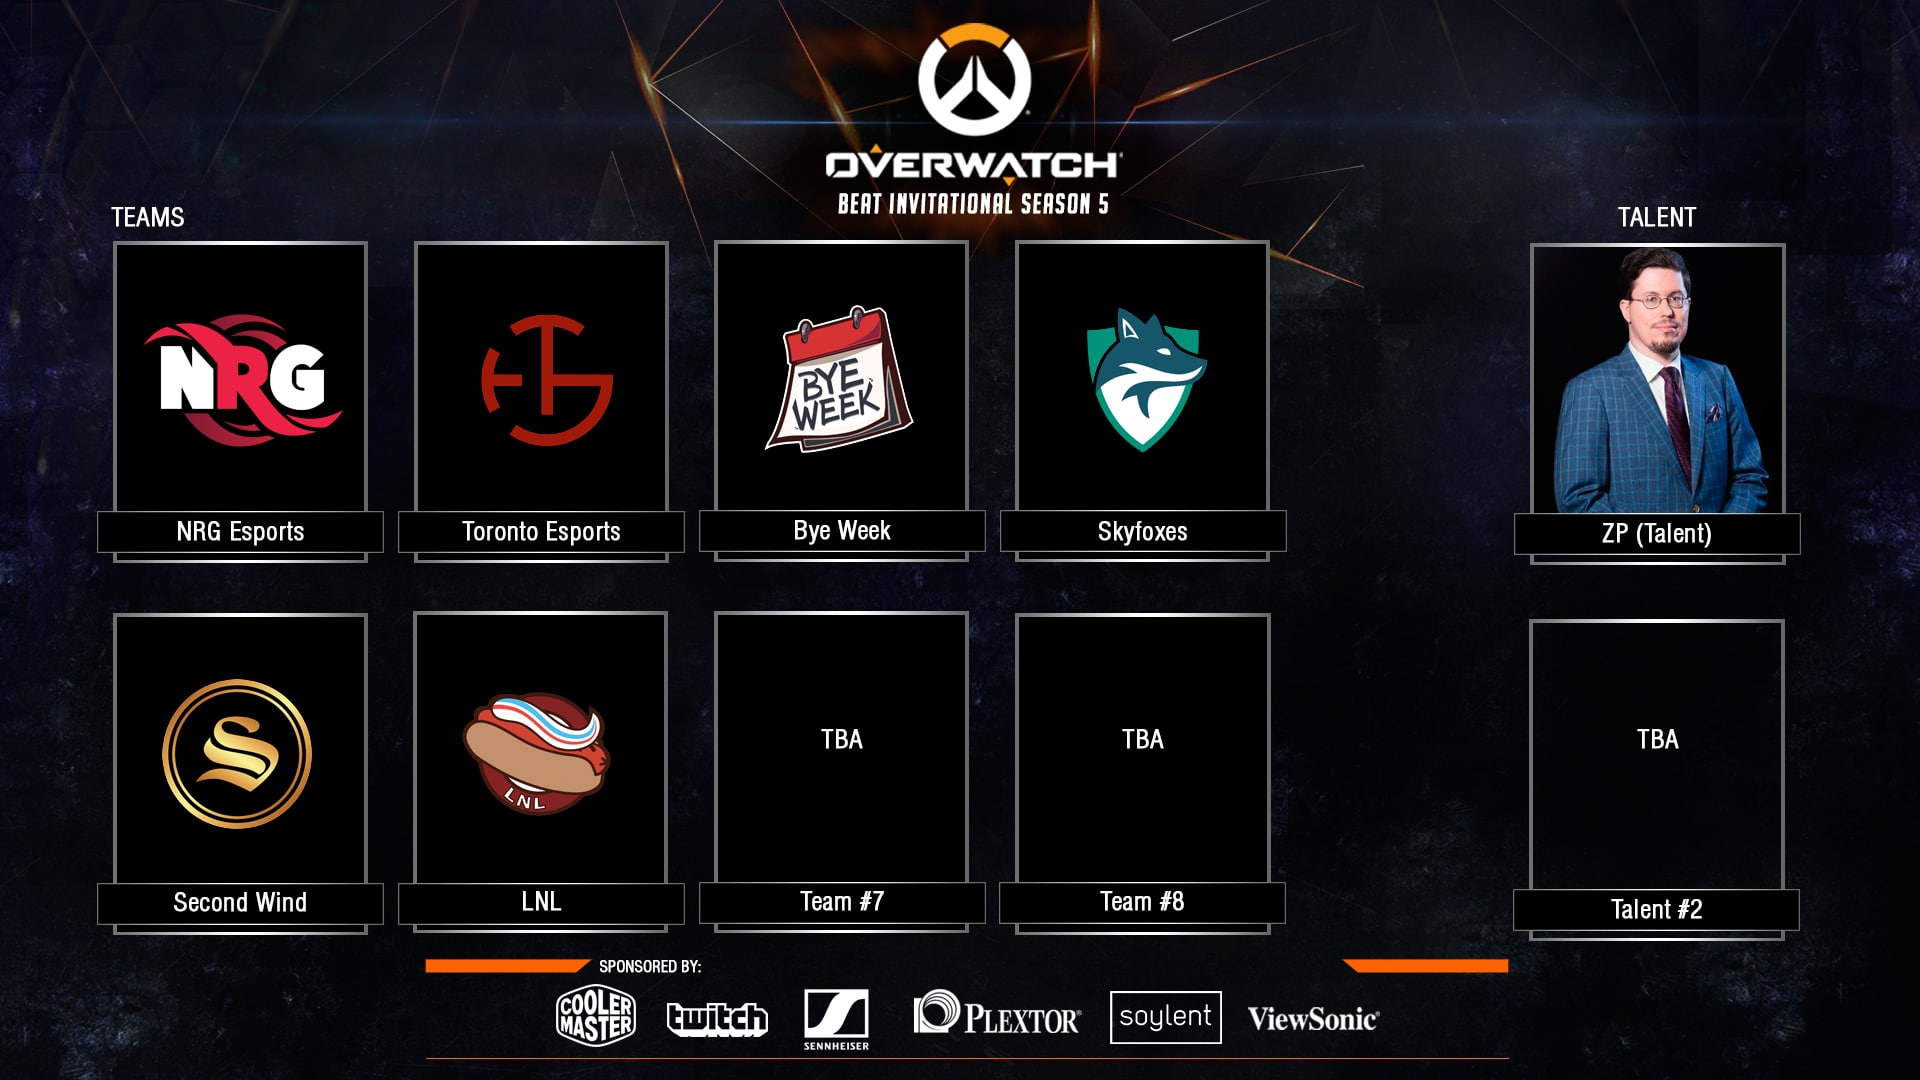 Overwatch BEAT Invitational teams and casters announcement